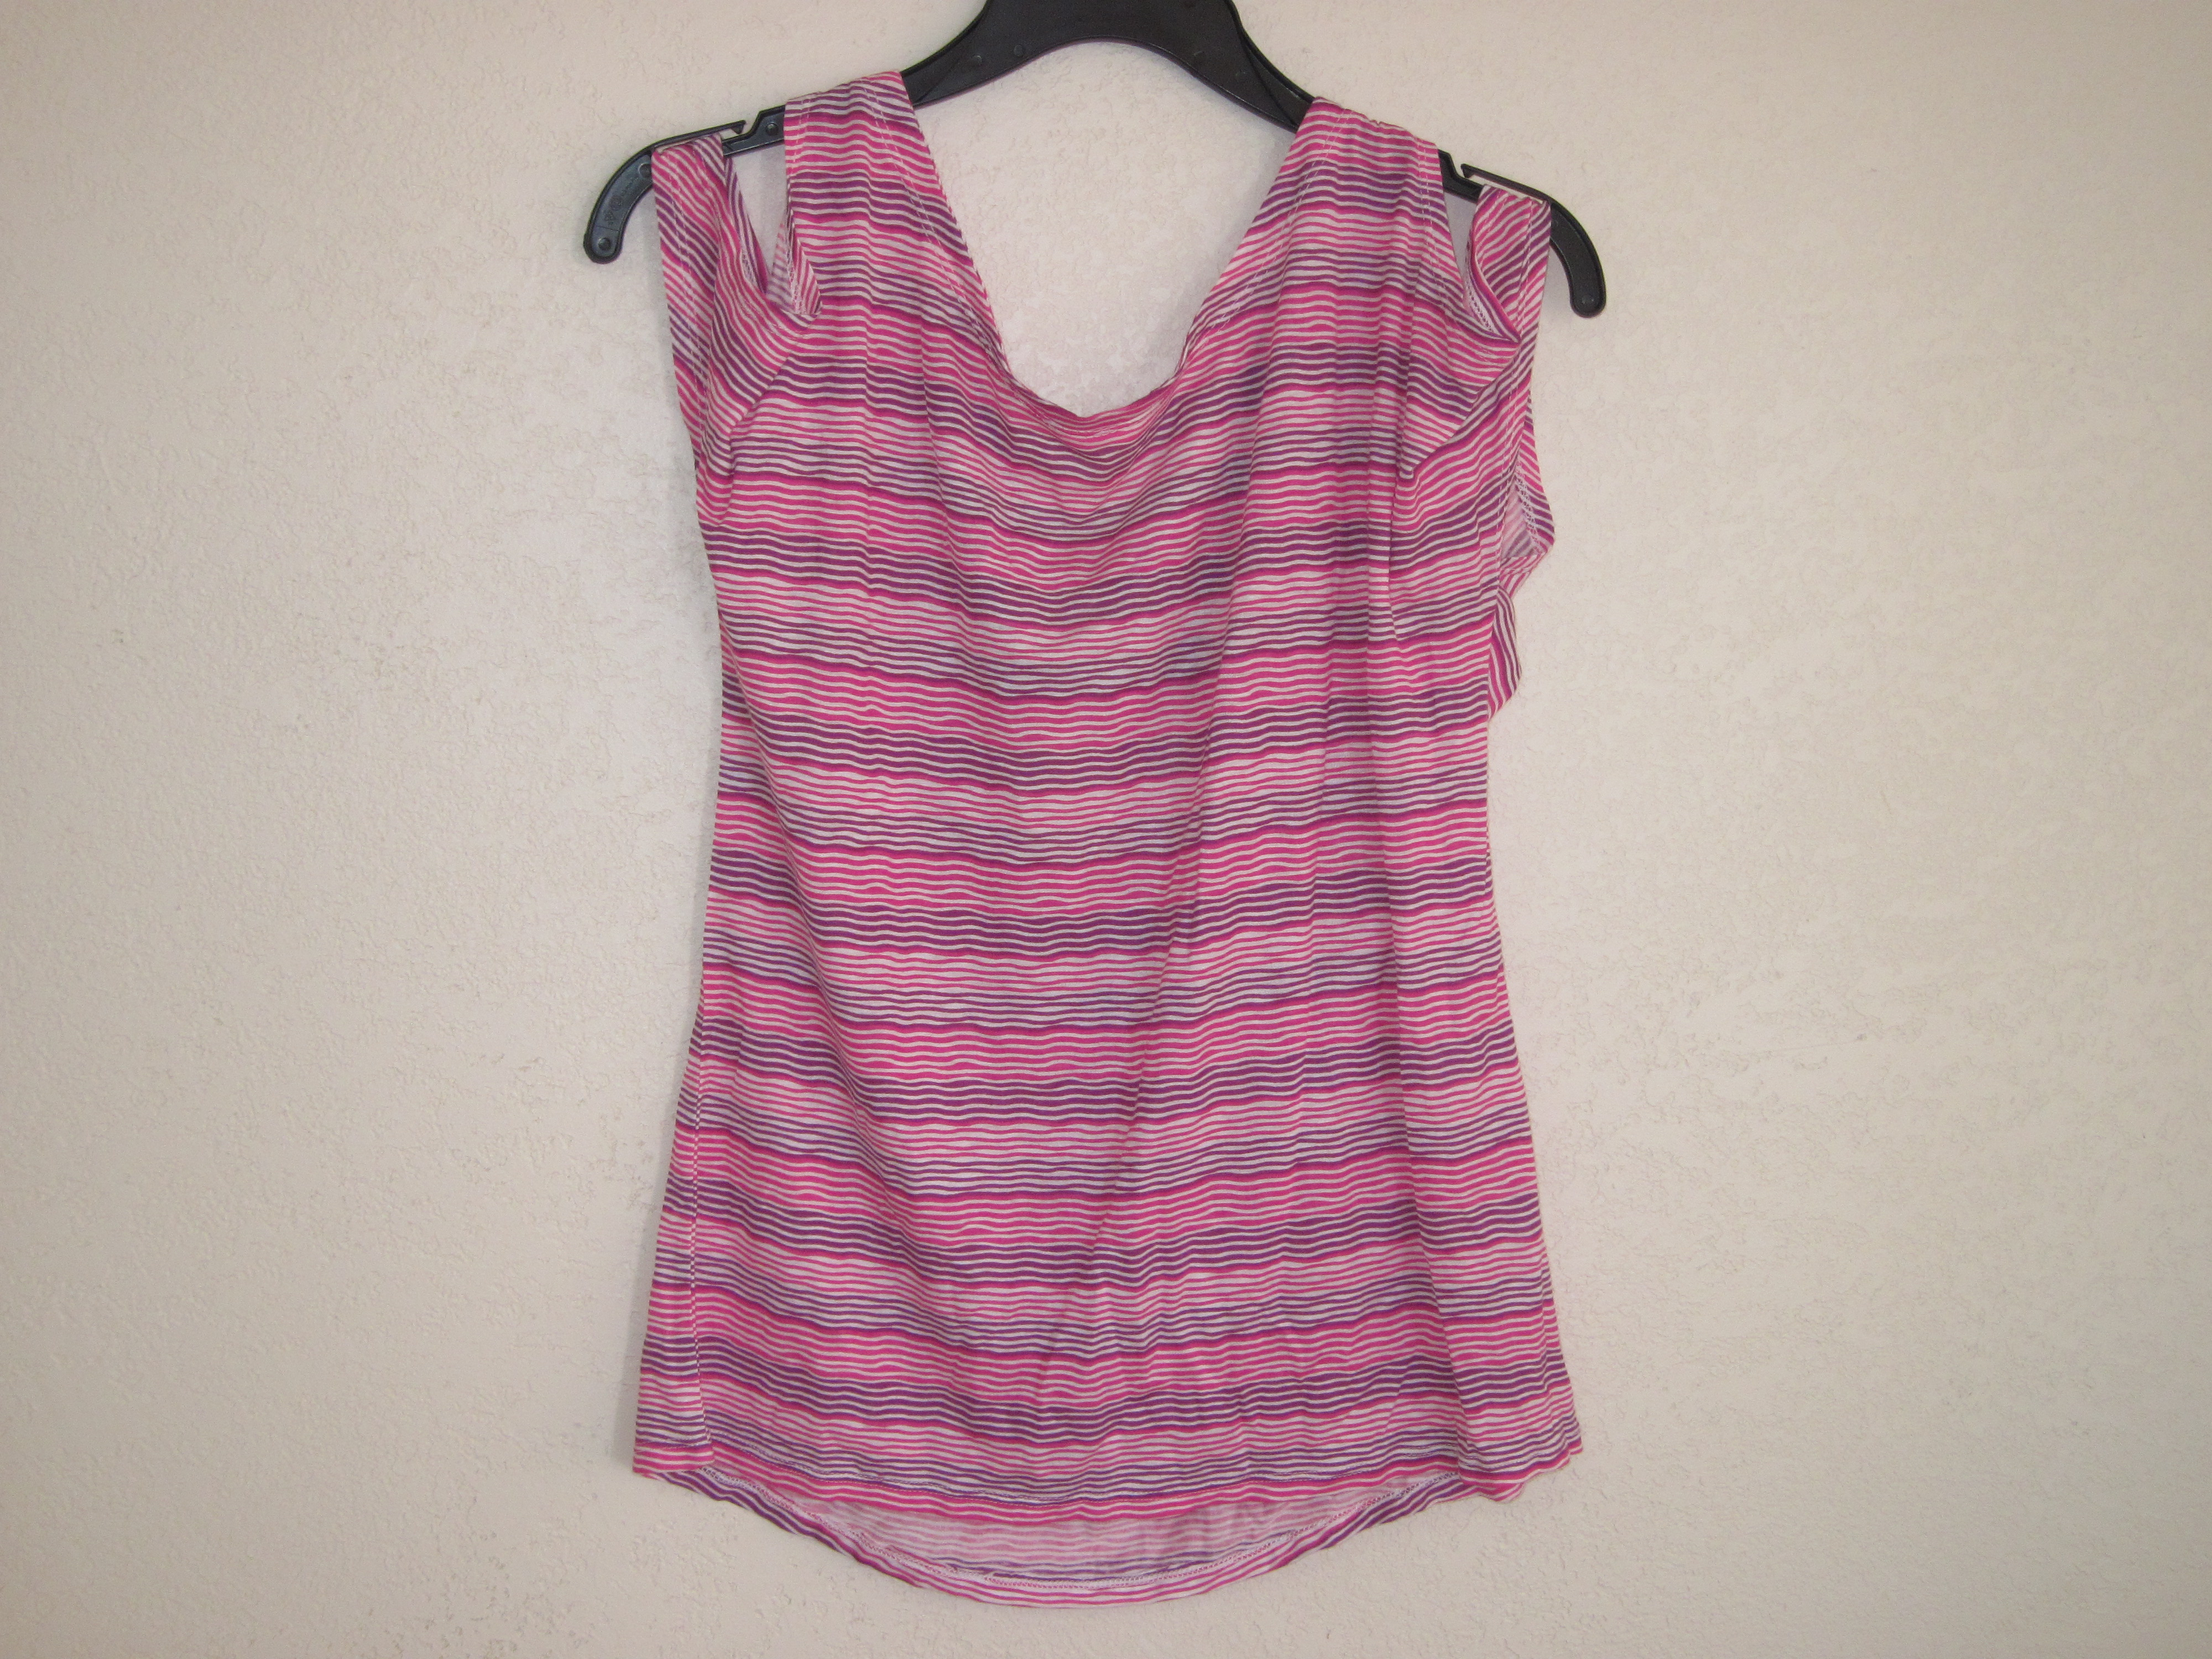 Dream Out Loud Sz XL Short Sleeve Striped Shirt pink & purple